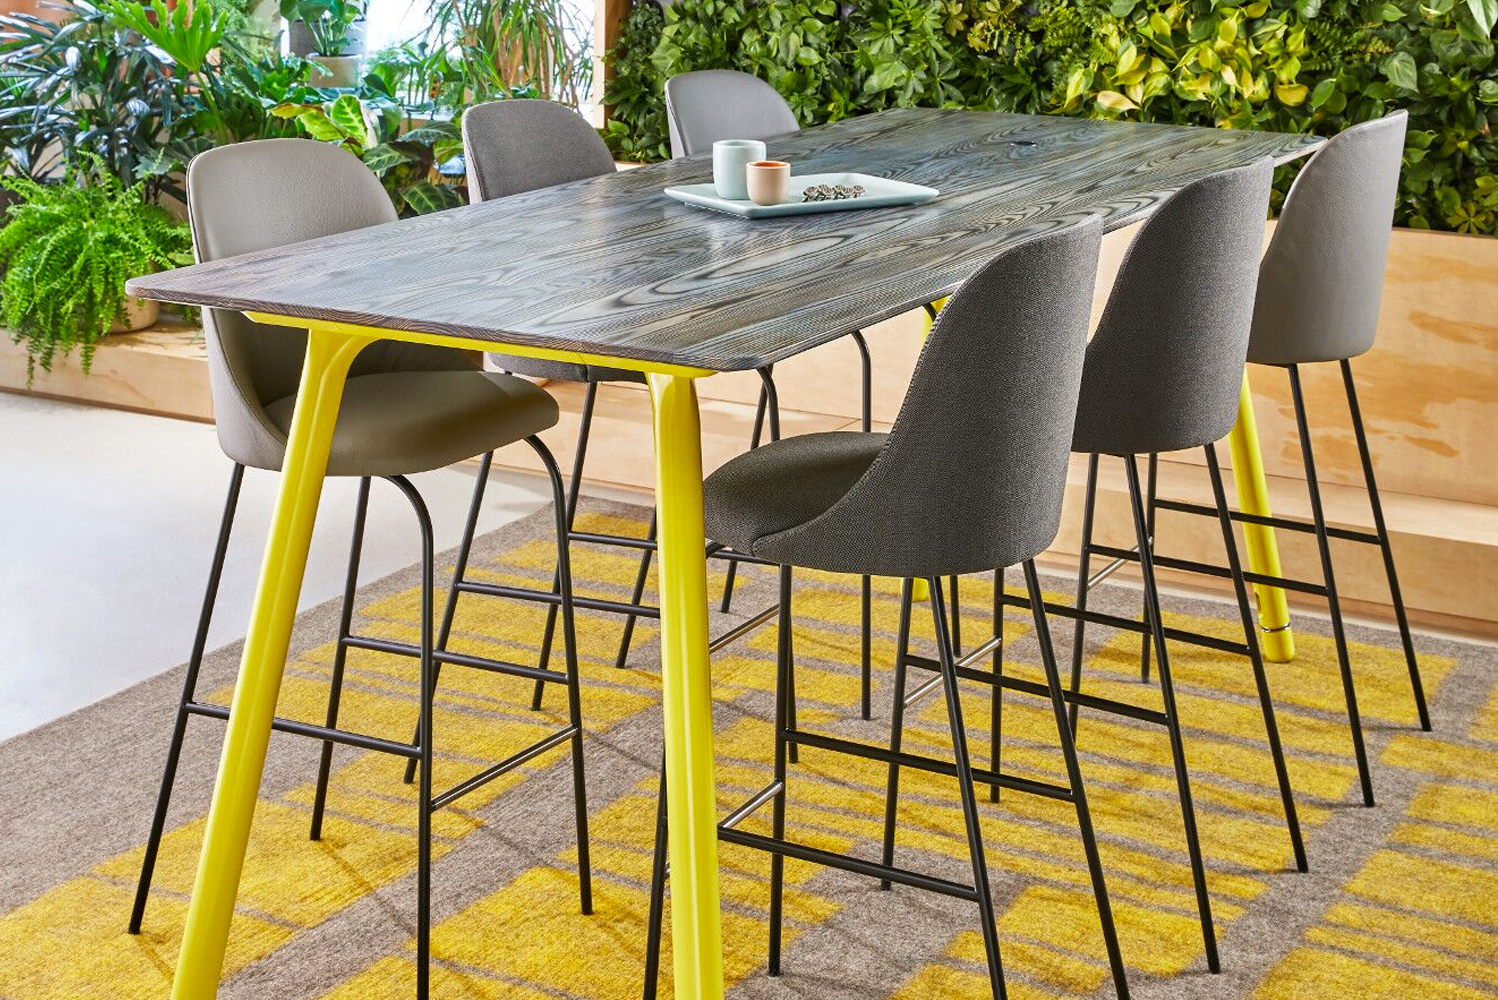 Introducing Potrero415 Light, a lighter scale version of the Potrero415 table series from Coalesse.